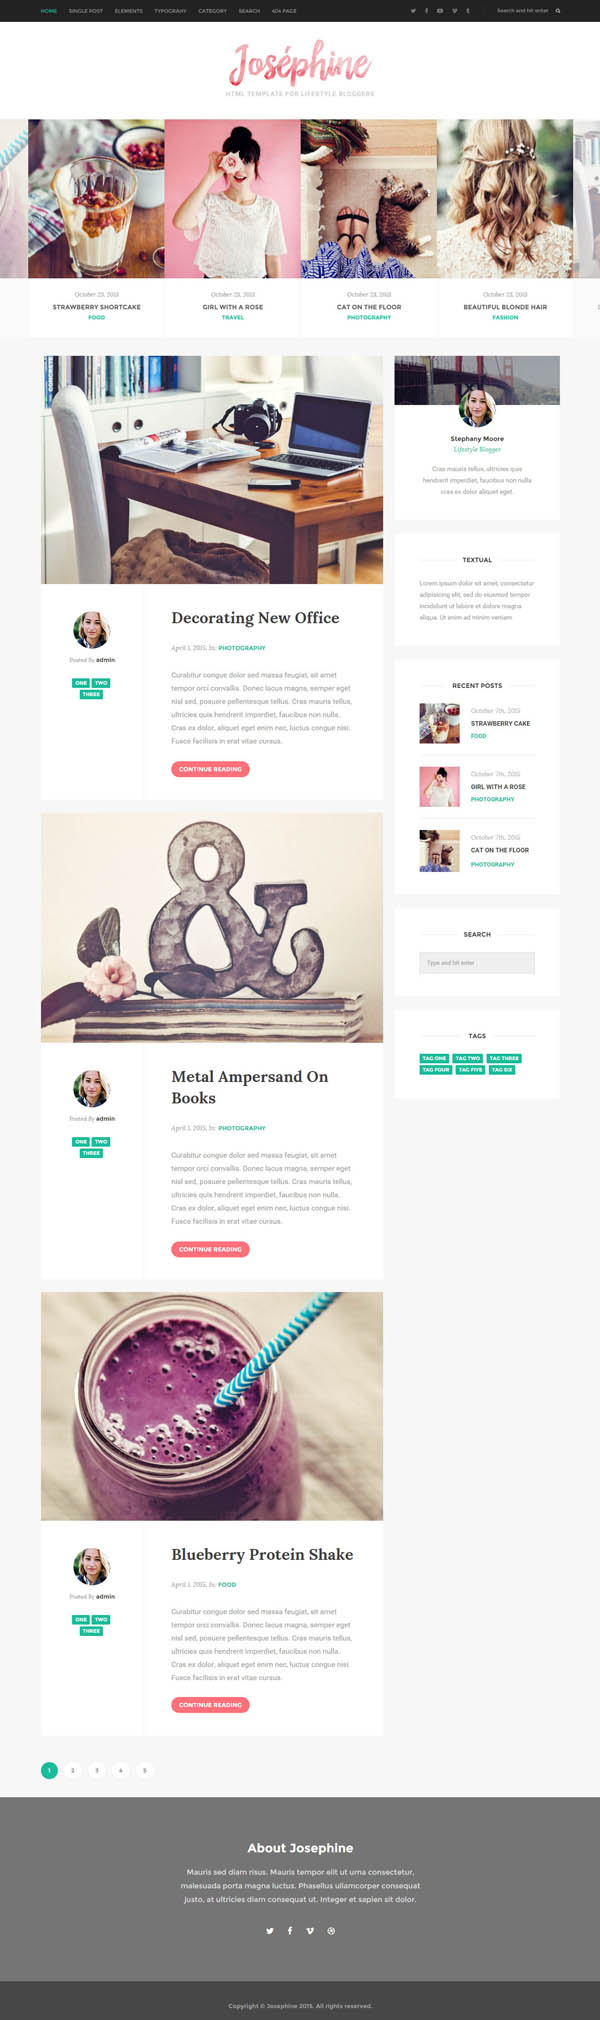 Josephine - HTML Template For Lifestyle Bloggers